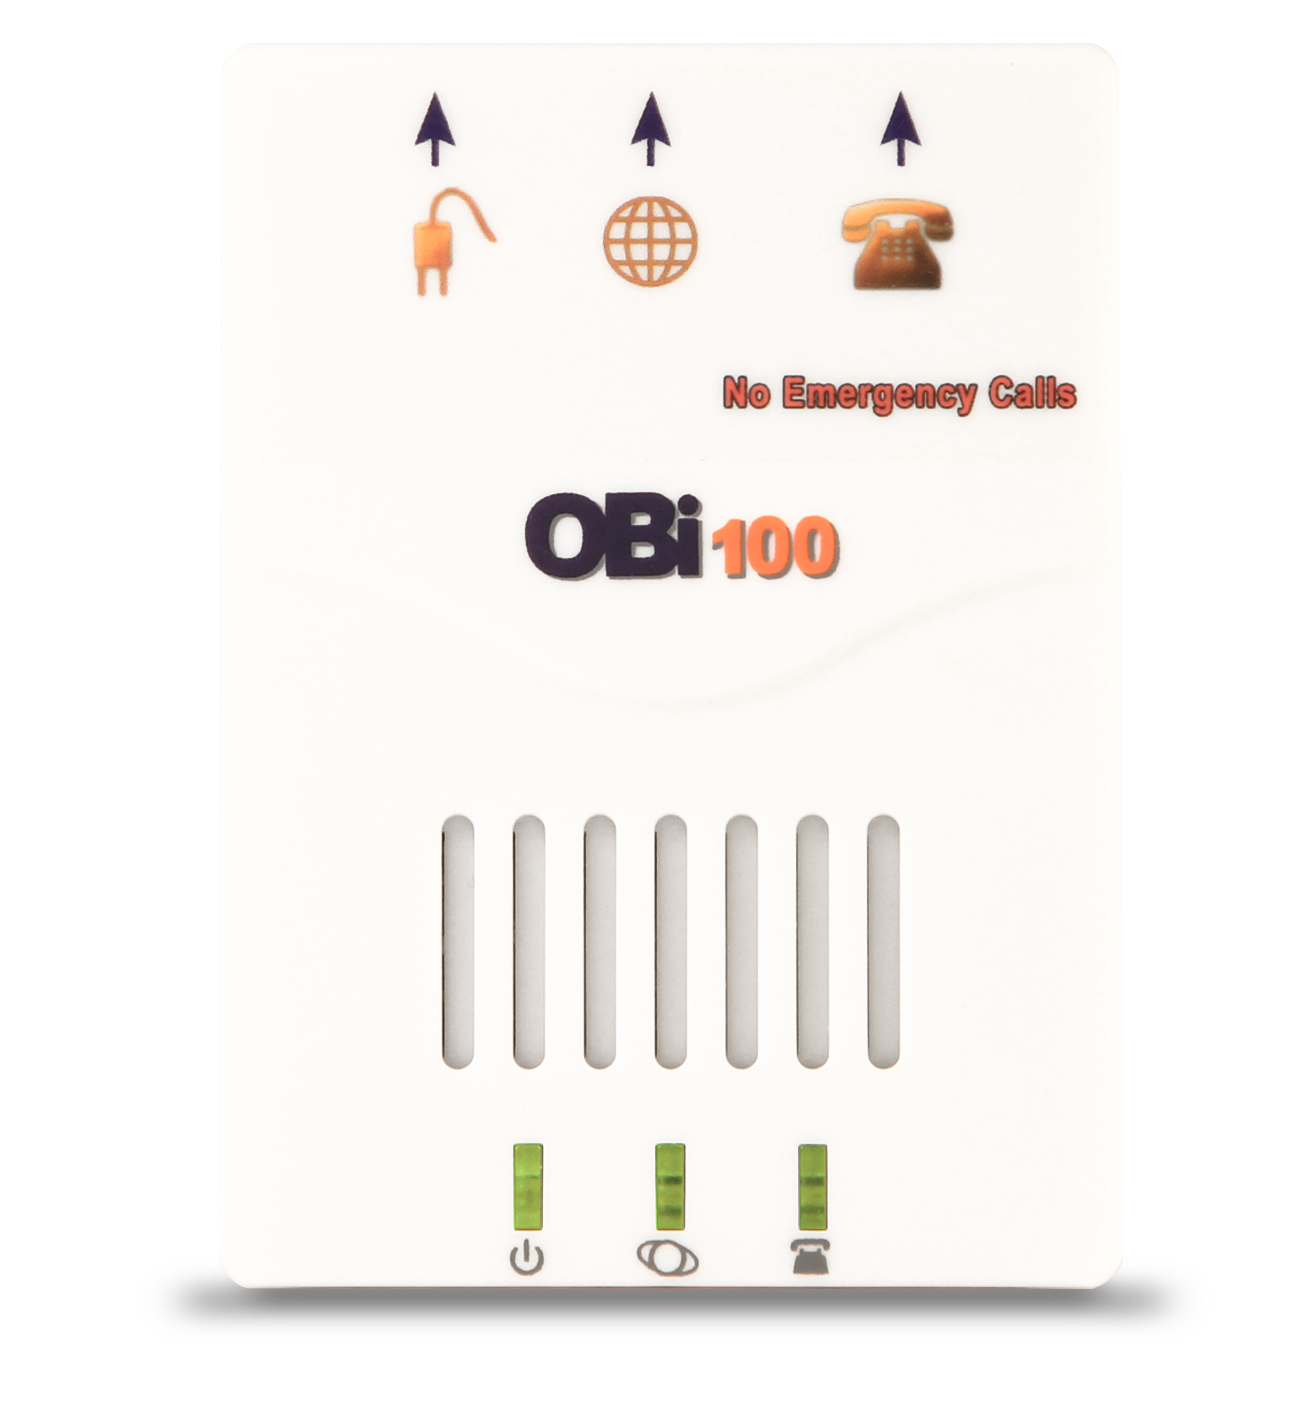 SuiteAdvantage and OBi100 configuration